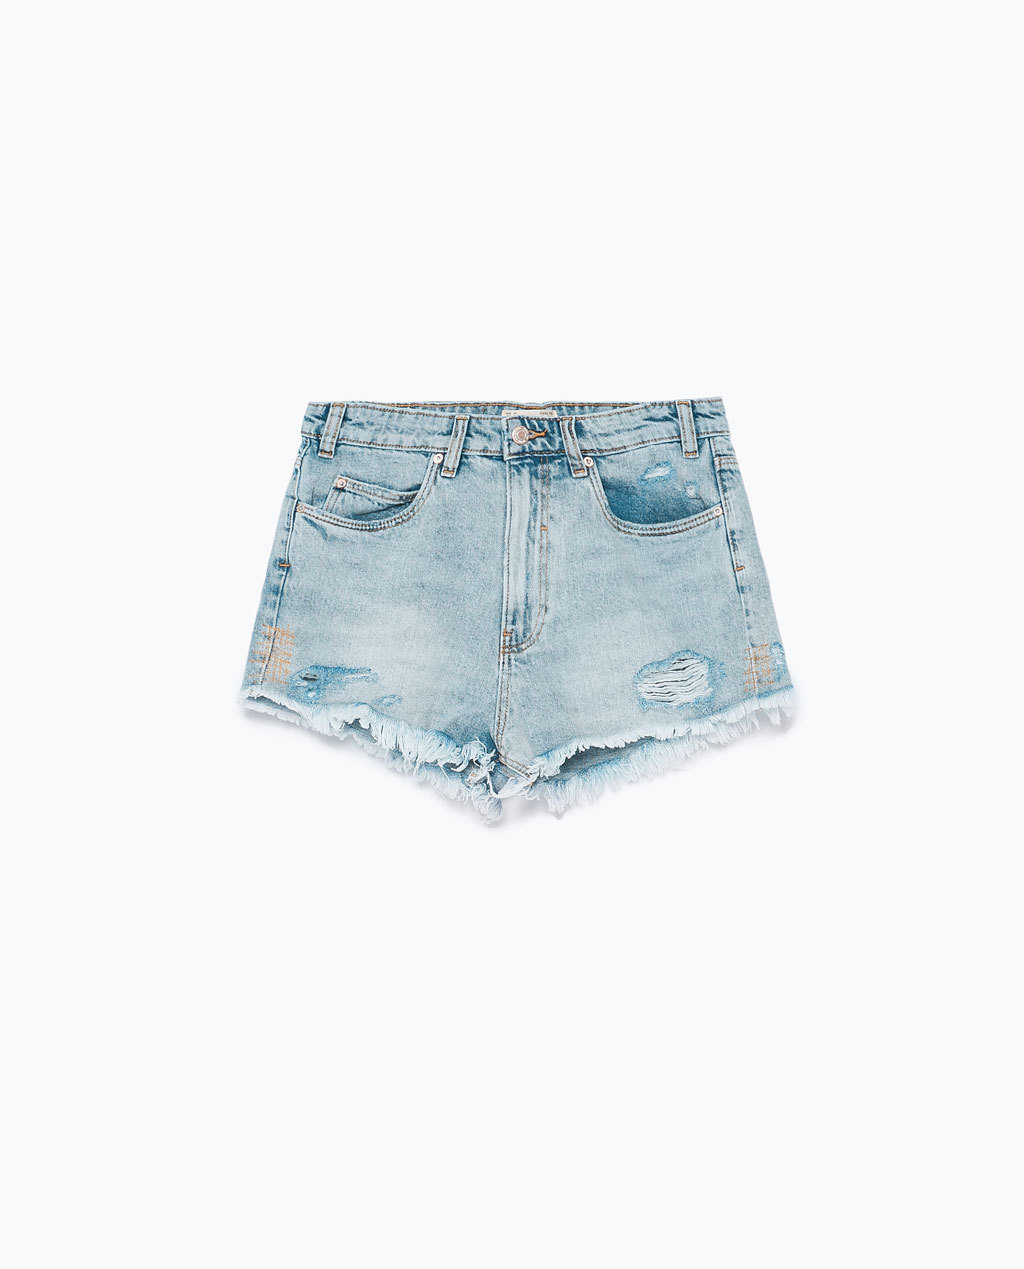 Vintage Shorts - pattern: plain; pocket detail: traditional 5 pocket; waist: mid/regular rise; predominant colour: denim; occasions: casual, holiday, creative work; fibres: cotton - stretch; texture group: denim; pattern type: fabric; season: s/s 2015; style: denim; length: short shorts; fit: slim leg; wardrobe: highlight